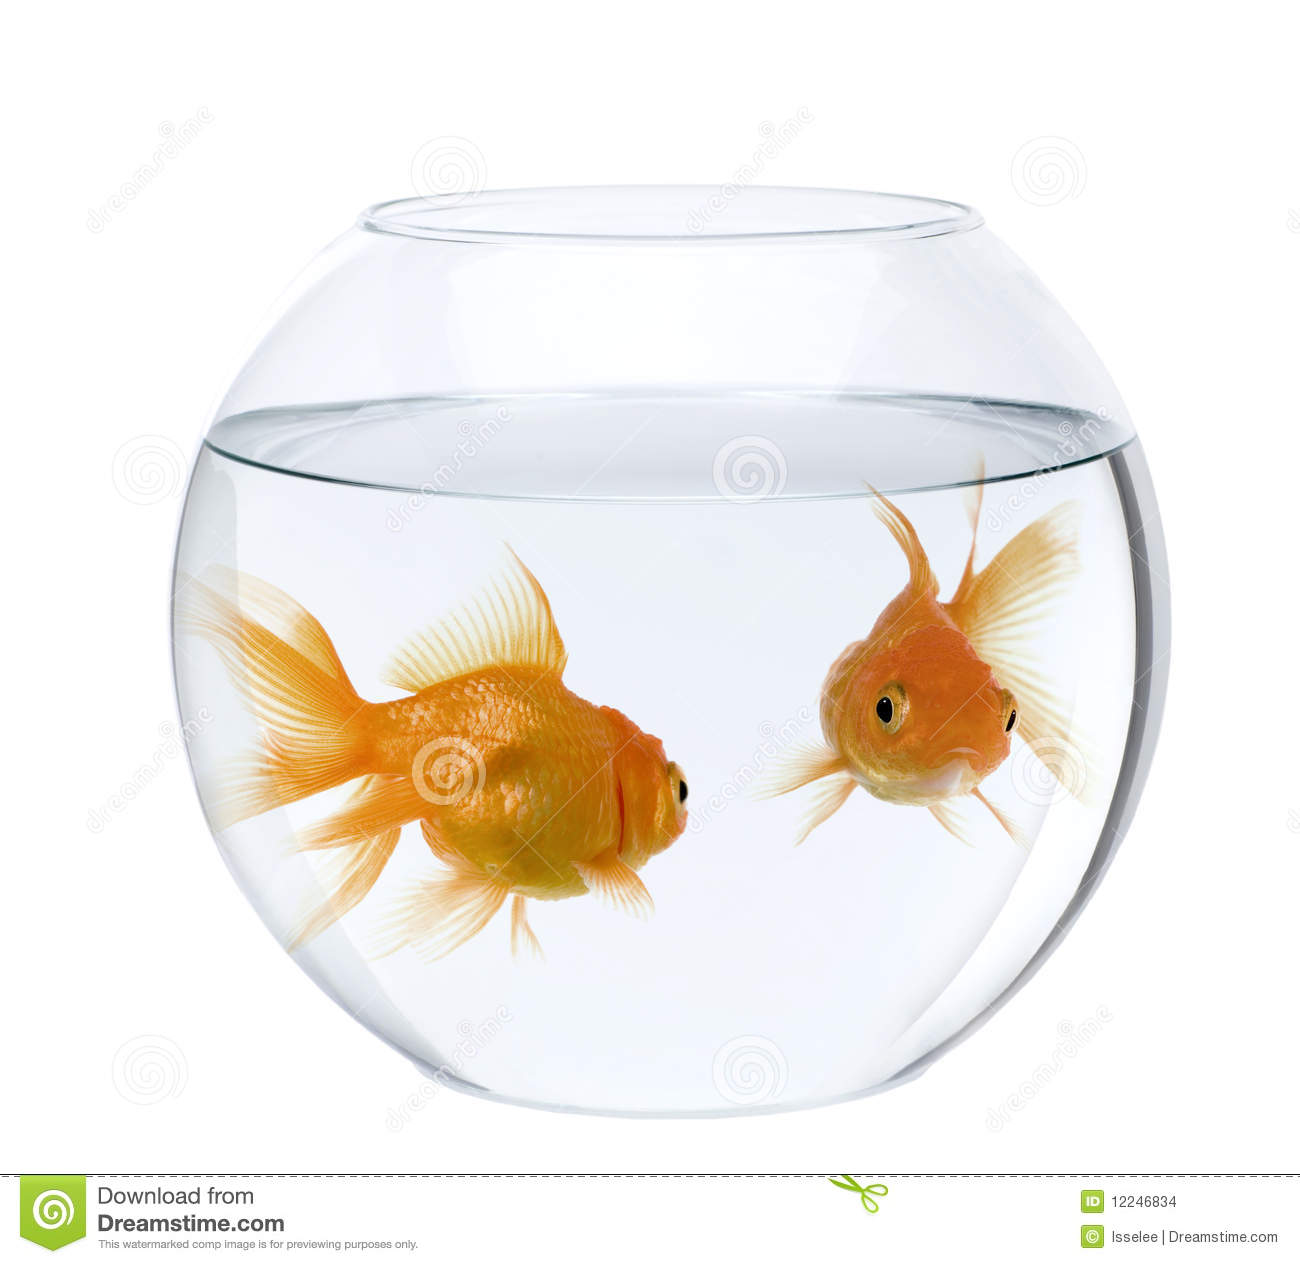 Goldfish in fish bowl, against white background